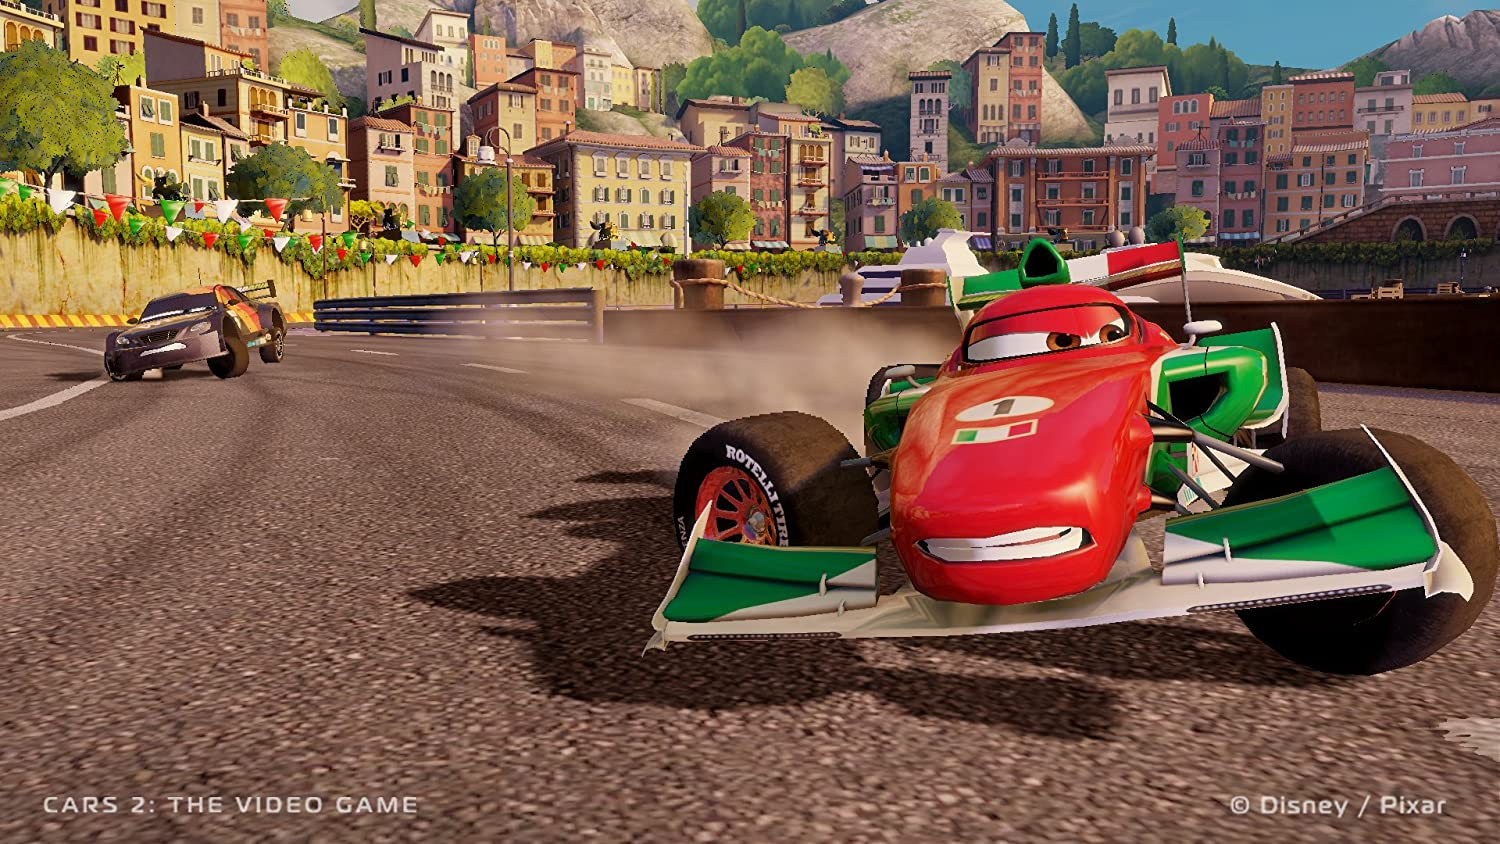 Amazon.com: Cars 2: The Video Game - Nintendo Wii: Disney Interactive:  Video Games